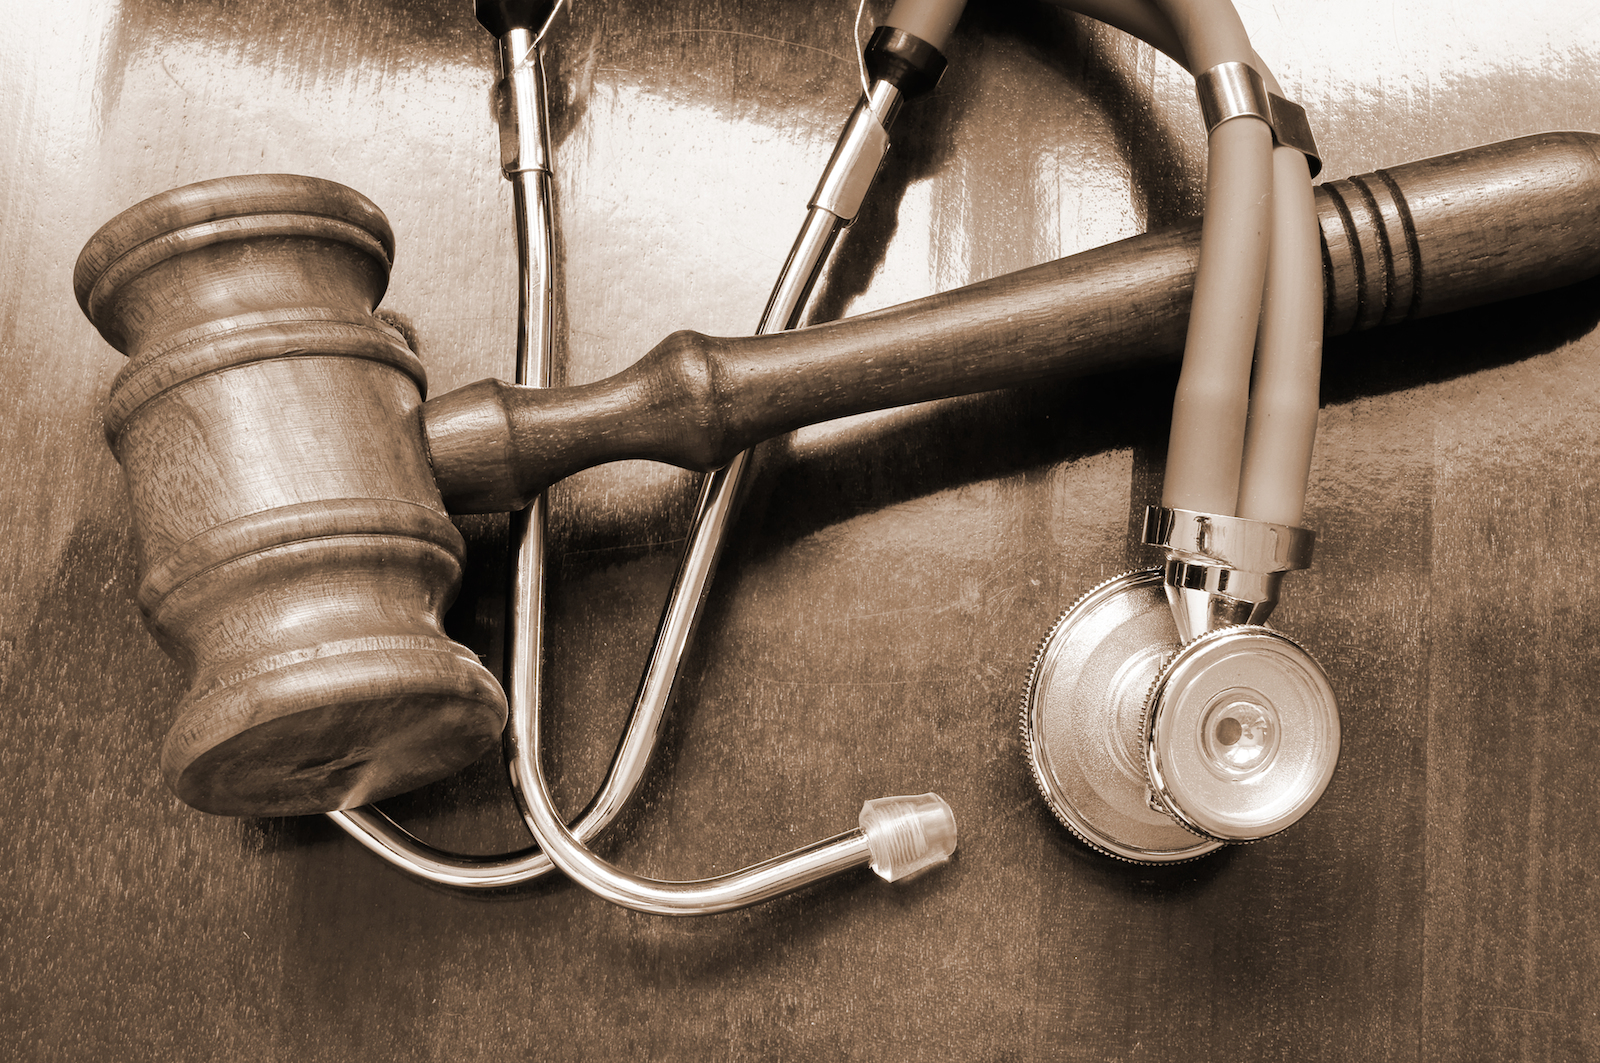 Stethoscope and Gavel, Tips to Avoid Malpractice | eMedCert